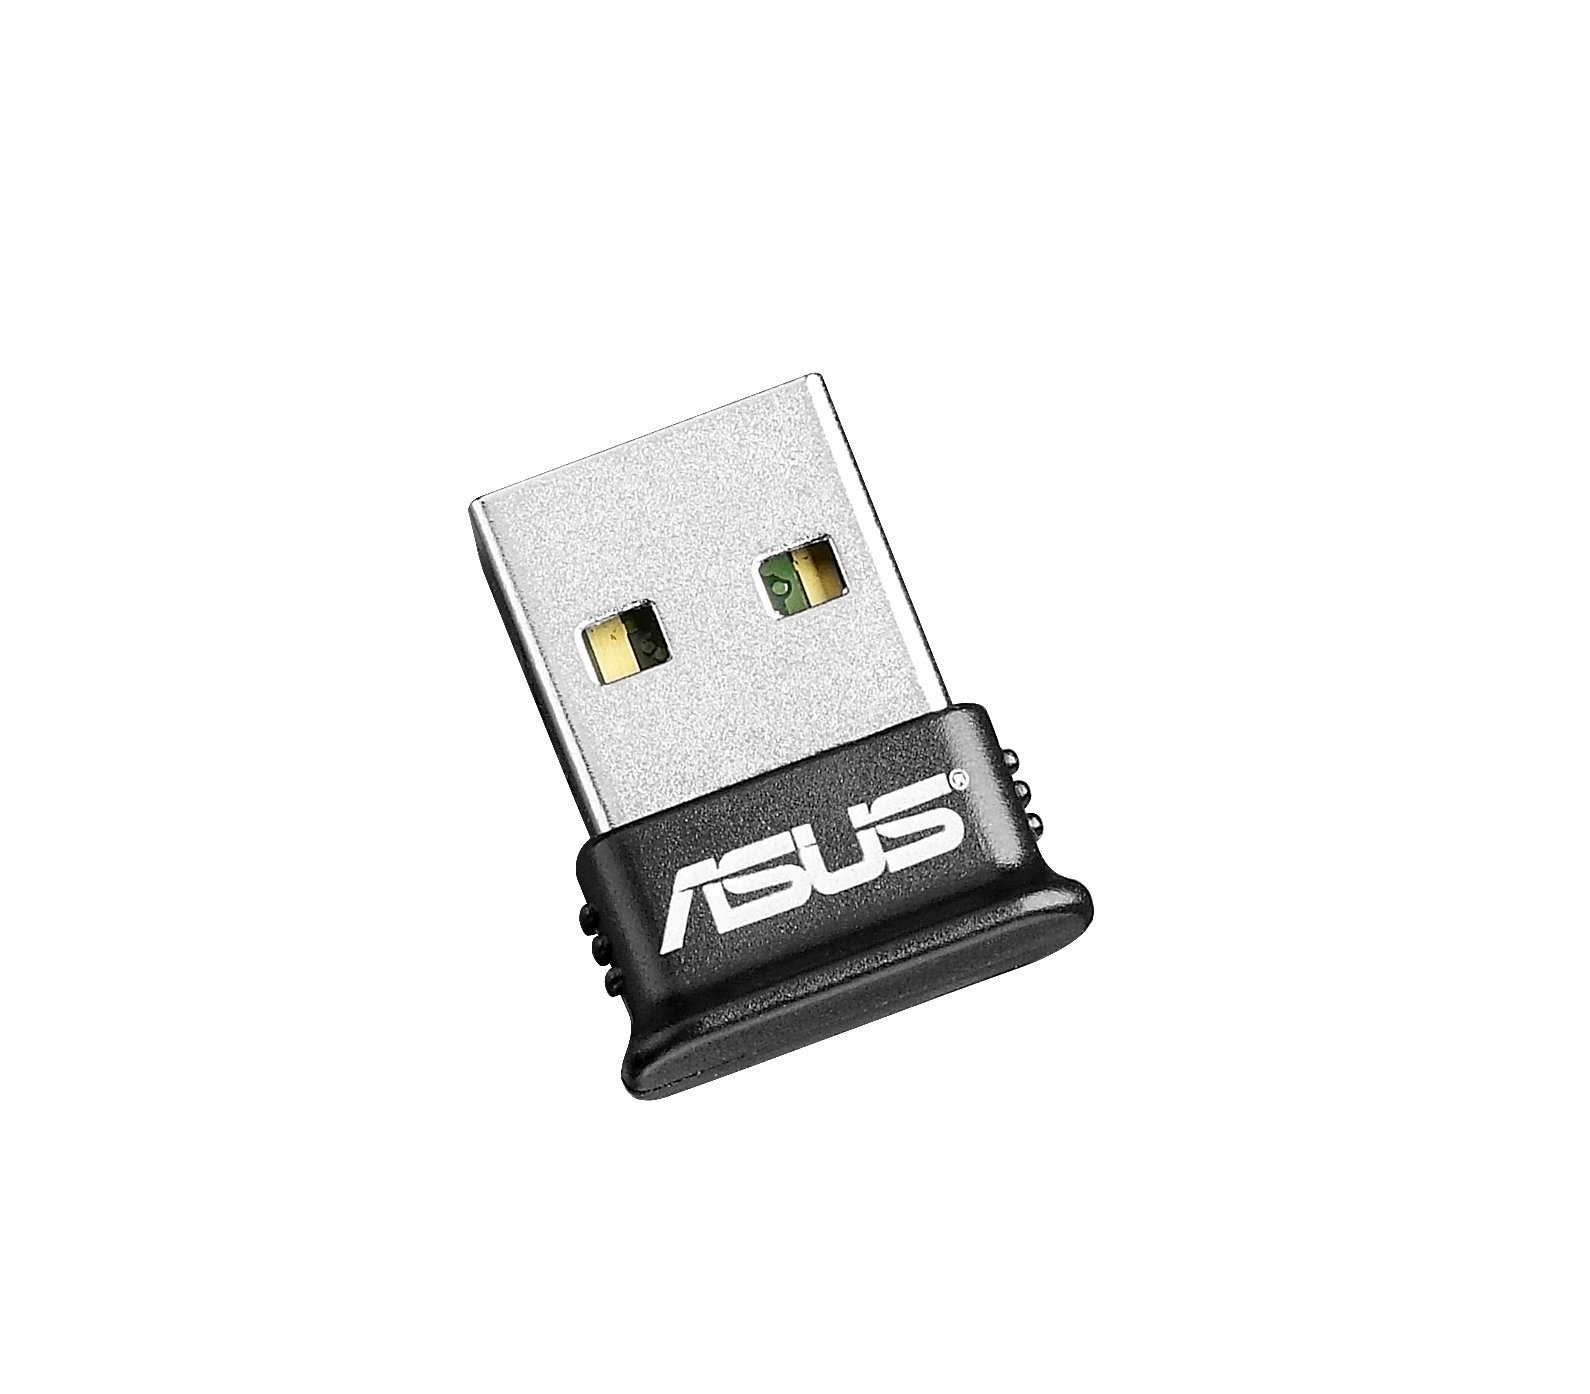 ASUS USB Adapter with Bluetooth (USB-BT400) by Asus